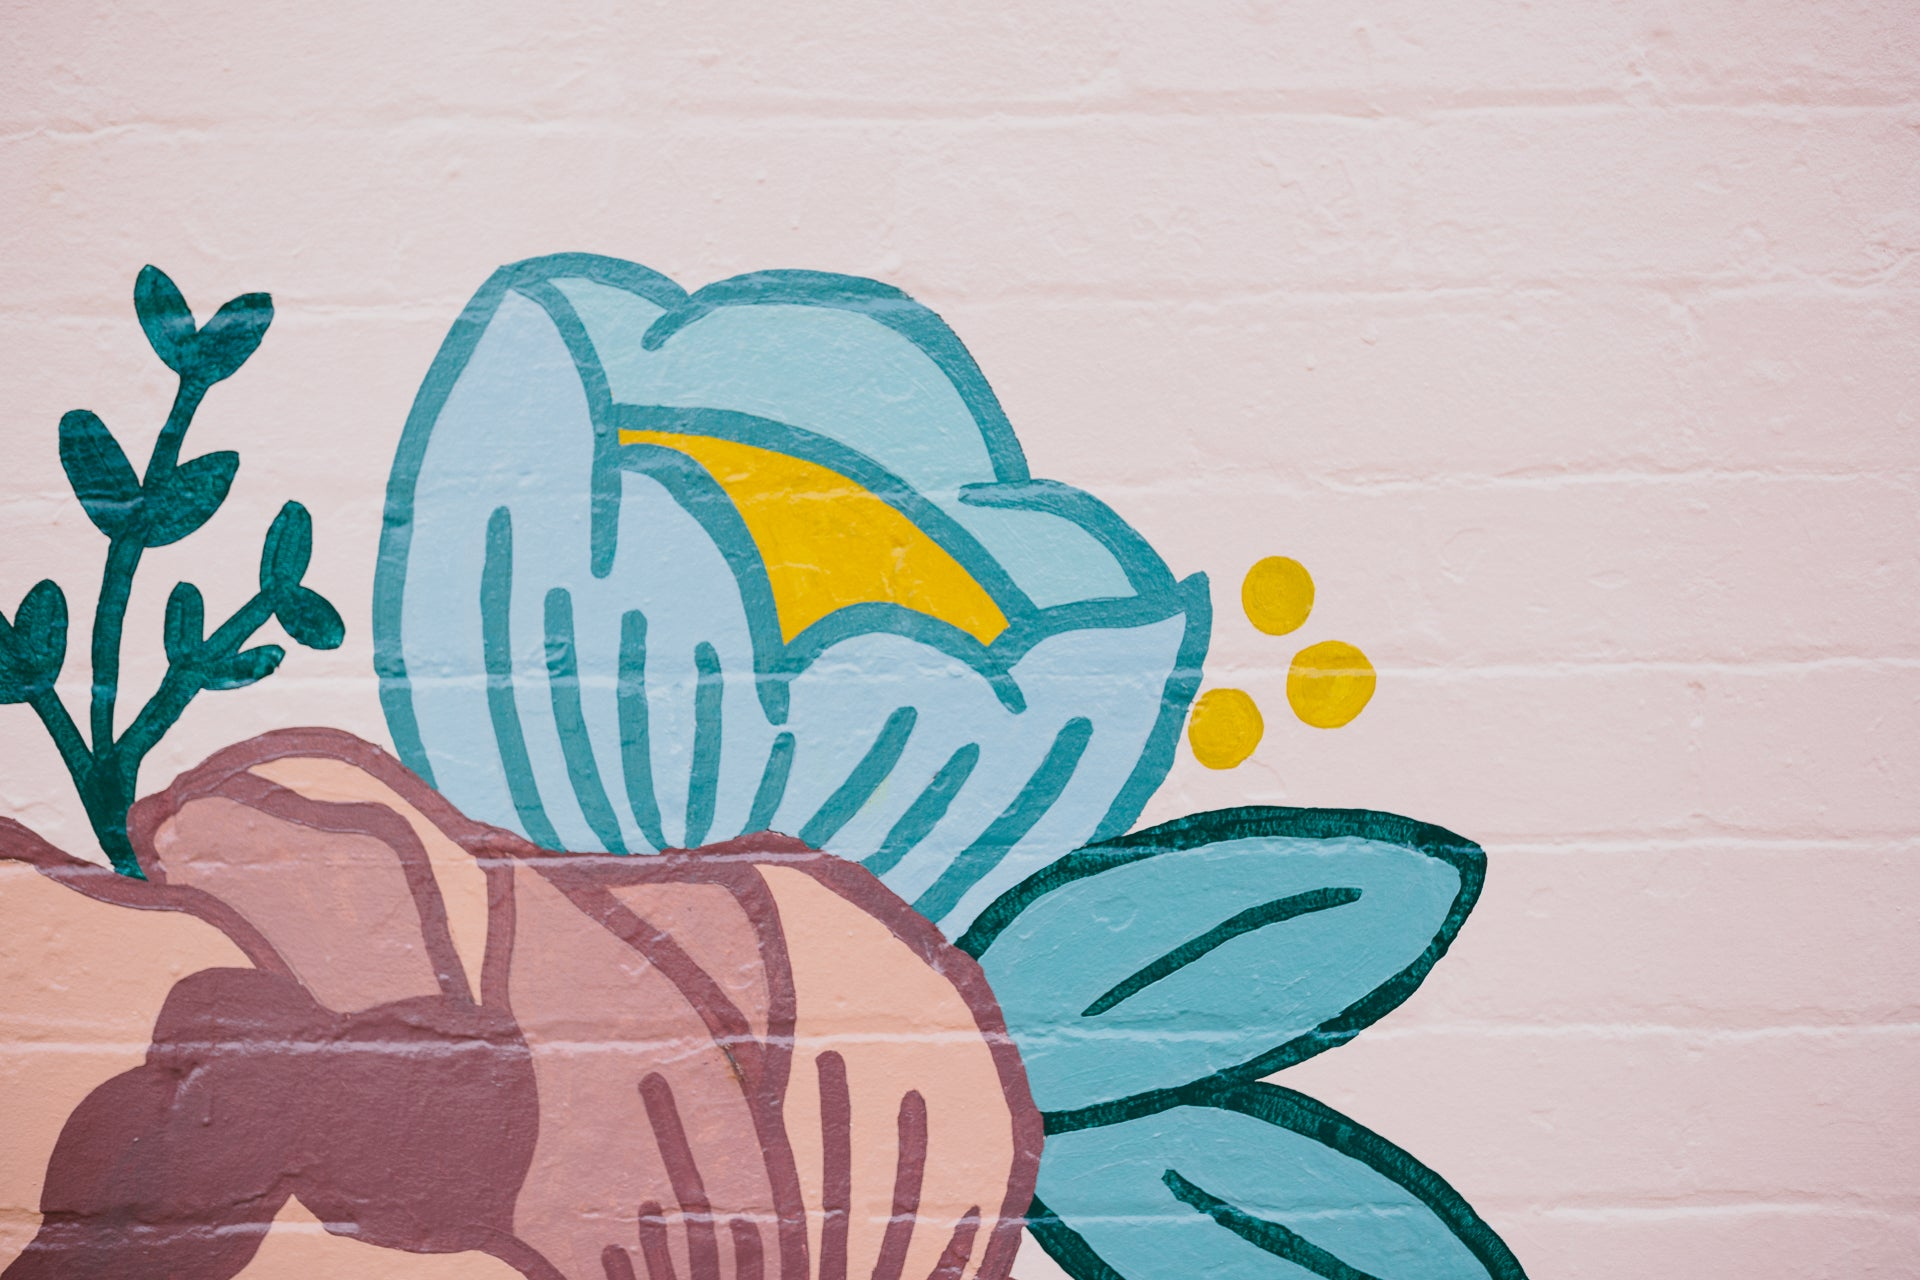 Melbourne Flower Delivery. An image of our old shop mural in Melbourne's northern suburb of Coburg. It features a pale pink background with flower illustrations in blue, teal, dusty pink and yellow.